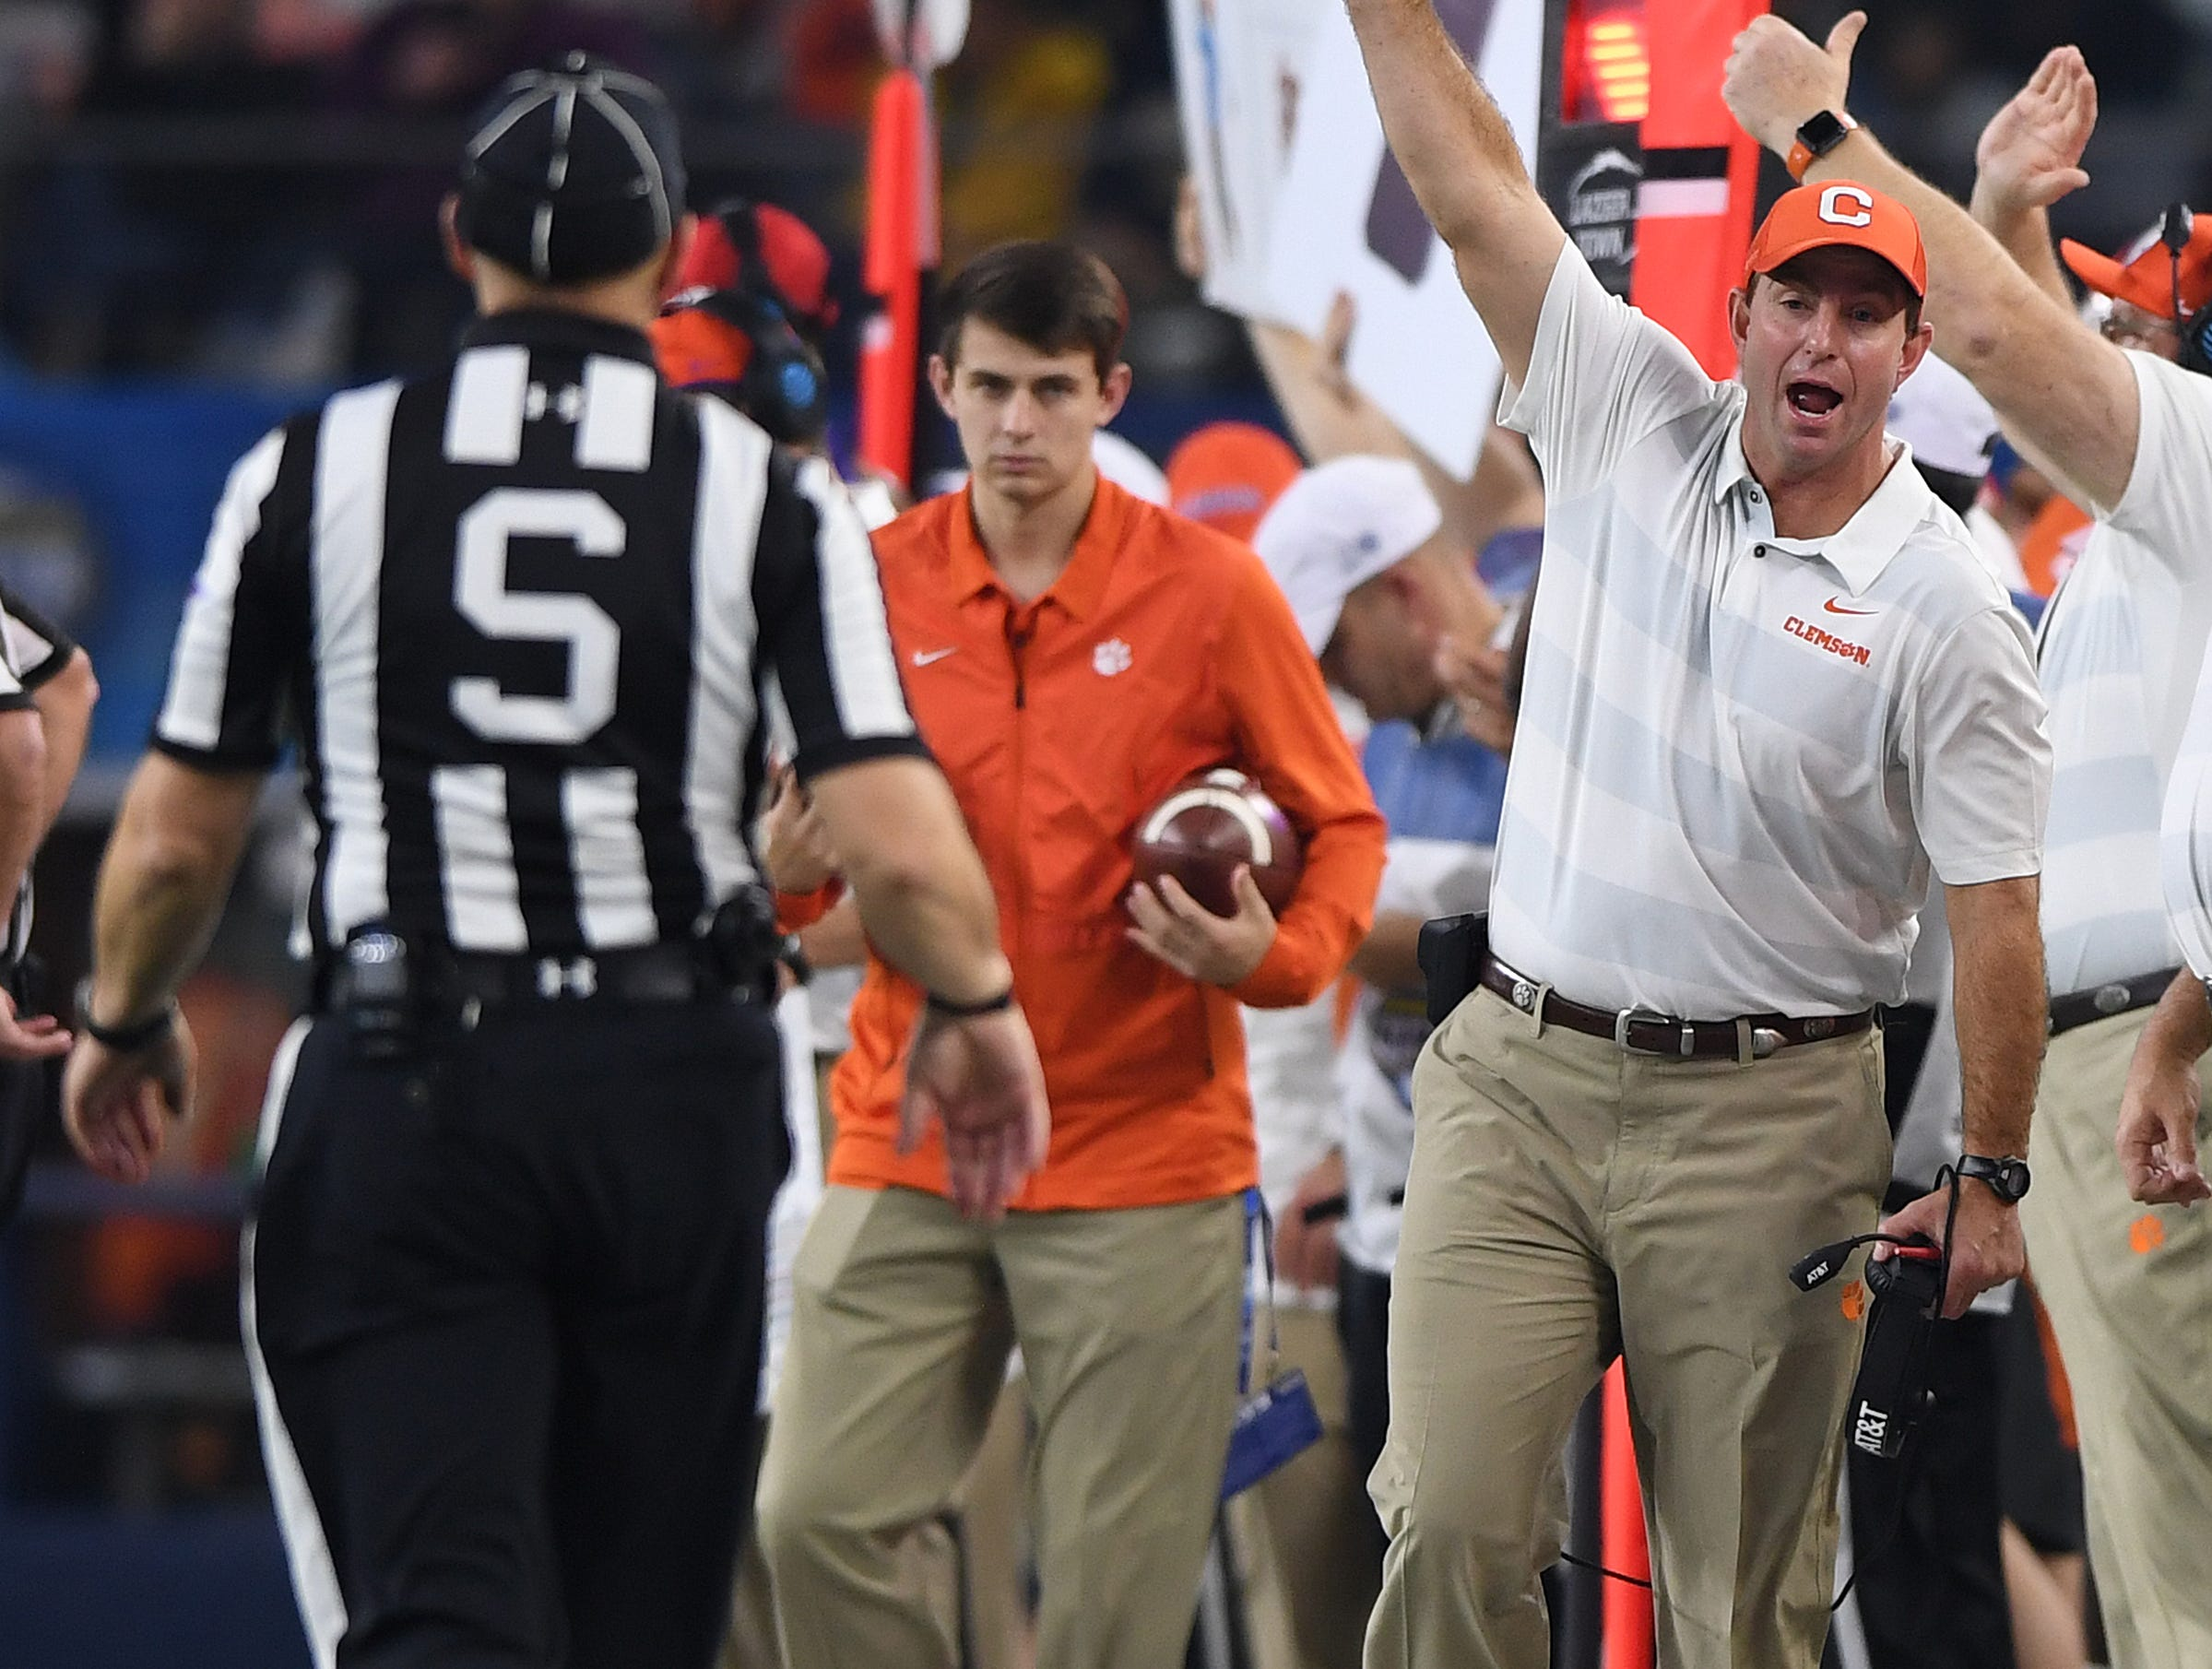 Clemson head coach Dabo Swinney argues a non call with an official during the 3rd quarter of the Goodyear Cotton Bowl at AT&T stadium in Arlington, TX Saturday, December 29, 2018.